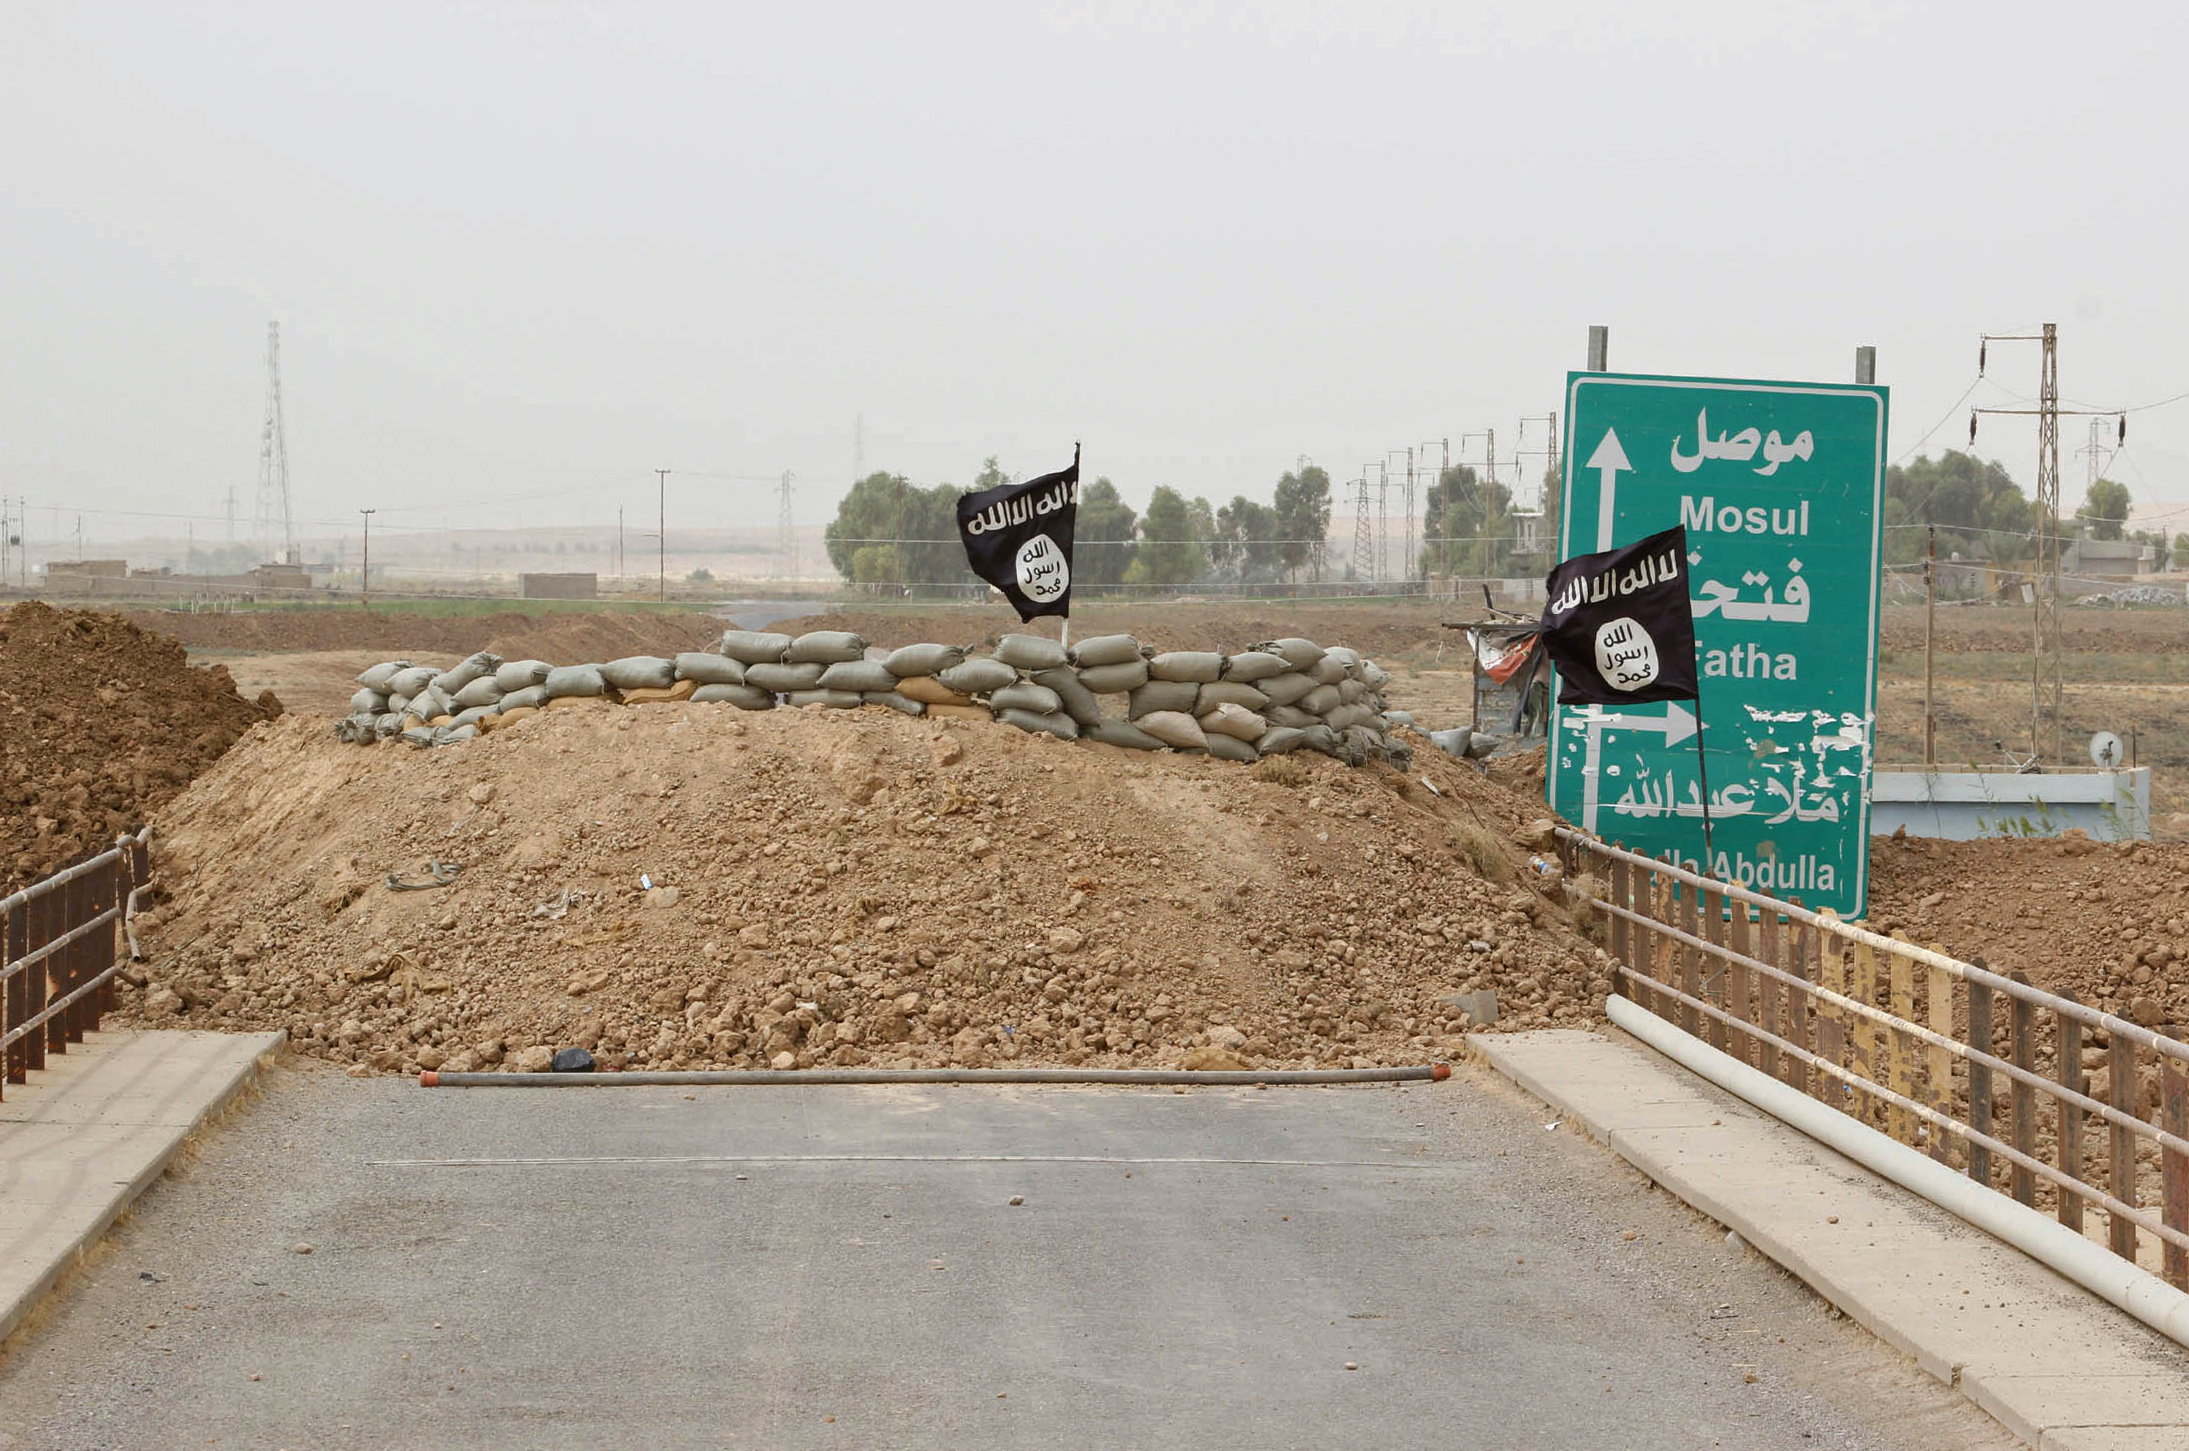 ISIS flags flutter on the Mullah Abdullah bridge in southern Kirkuk in early October 2014. The Iraqi Kurdish security forces are dug-in at the opposite end of the bridge.